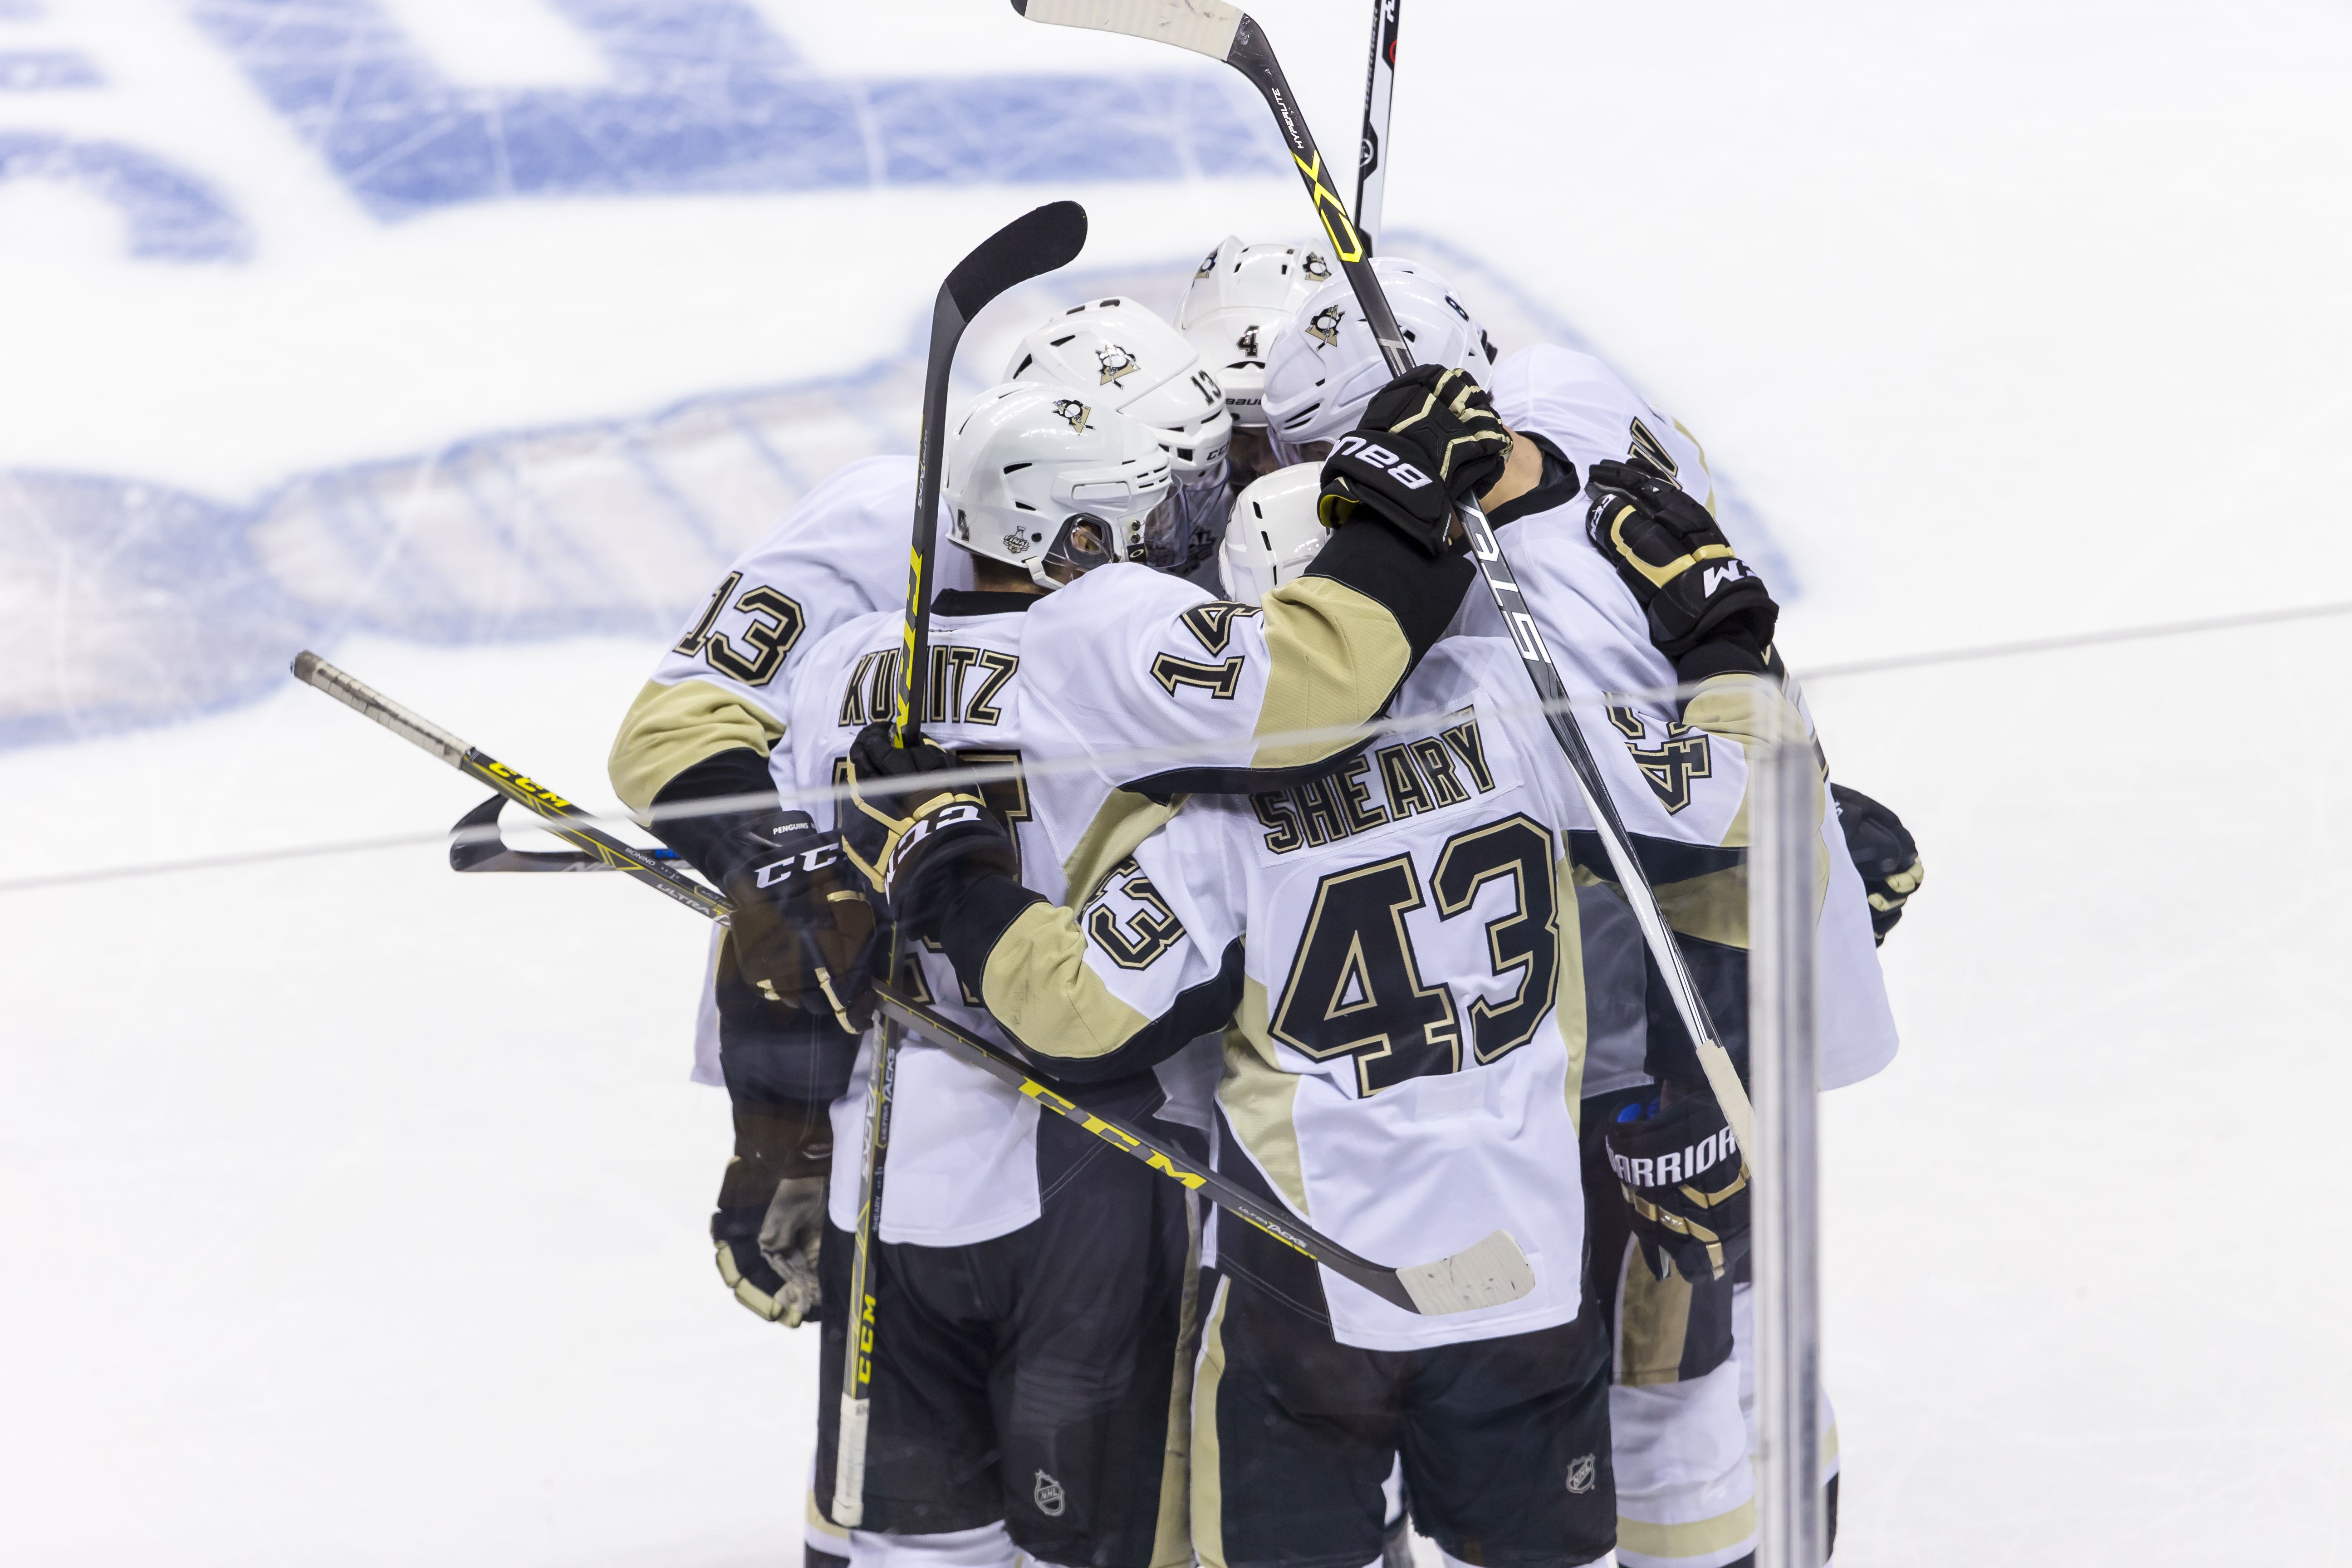 Pittsburgh Penguins celebrate a goal during the first period of the Stanley Cup Finals - Game 6 between the San Jose Sharks and the Pittsburgh Penguins at SAP Center in San Jose CA.(Photo by Allan Hamilton/ICON Sportswire) (Icon Sportswire via AP Images)